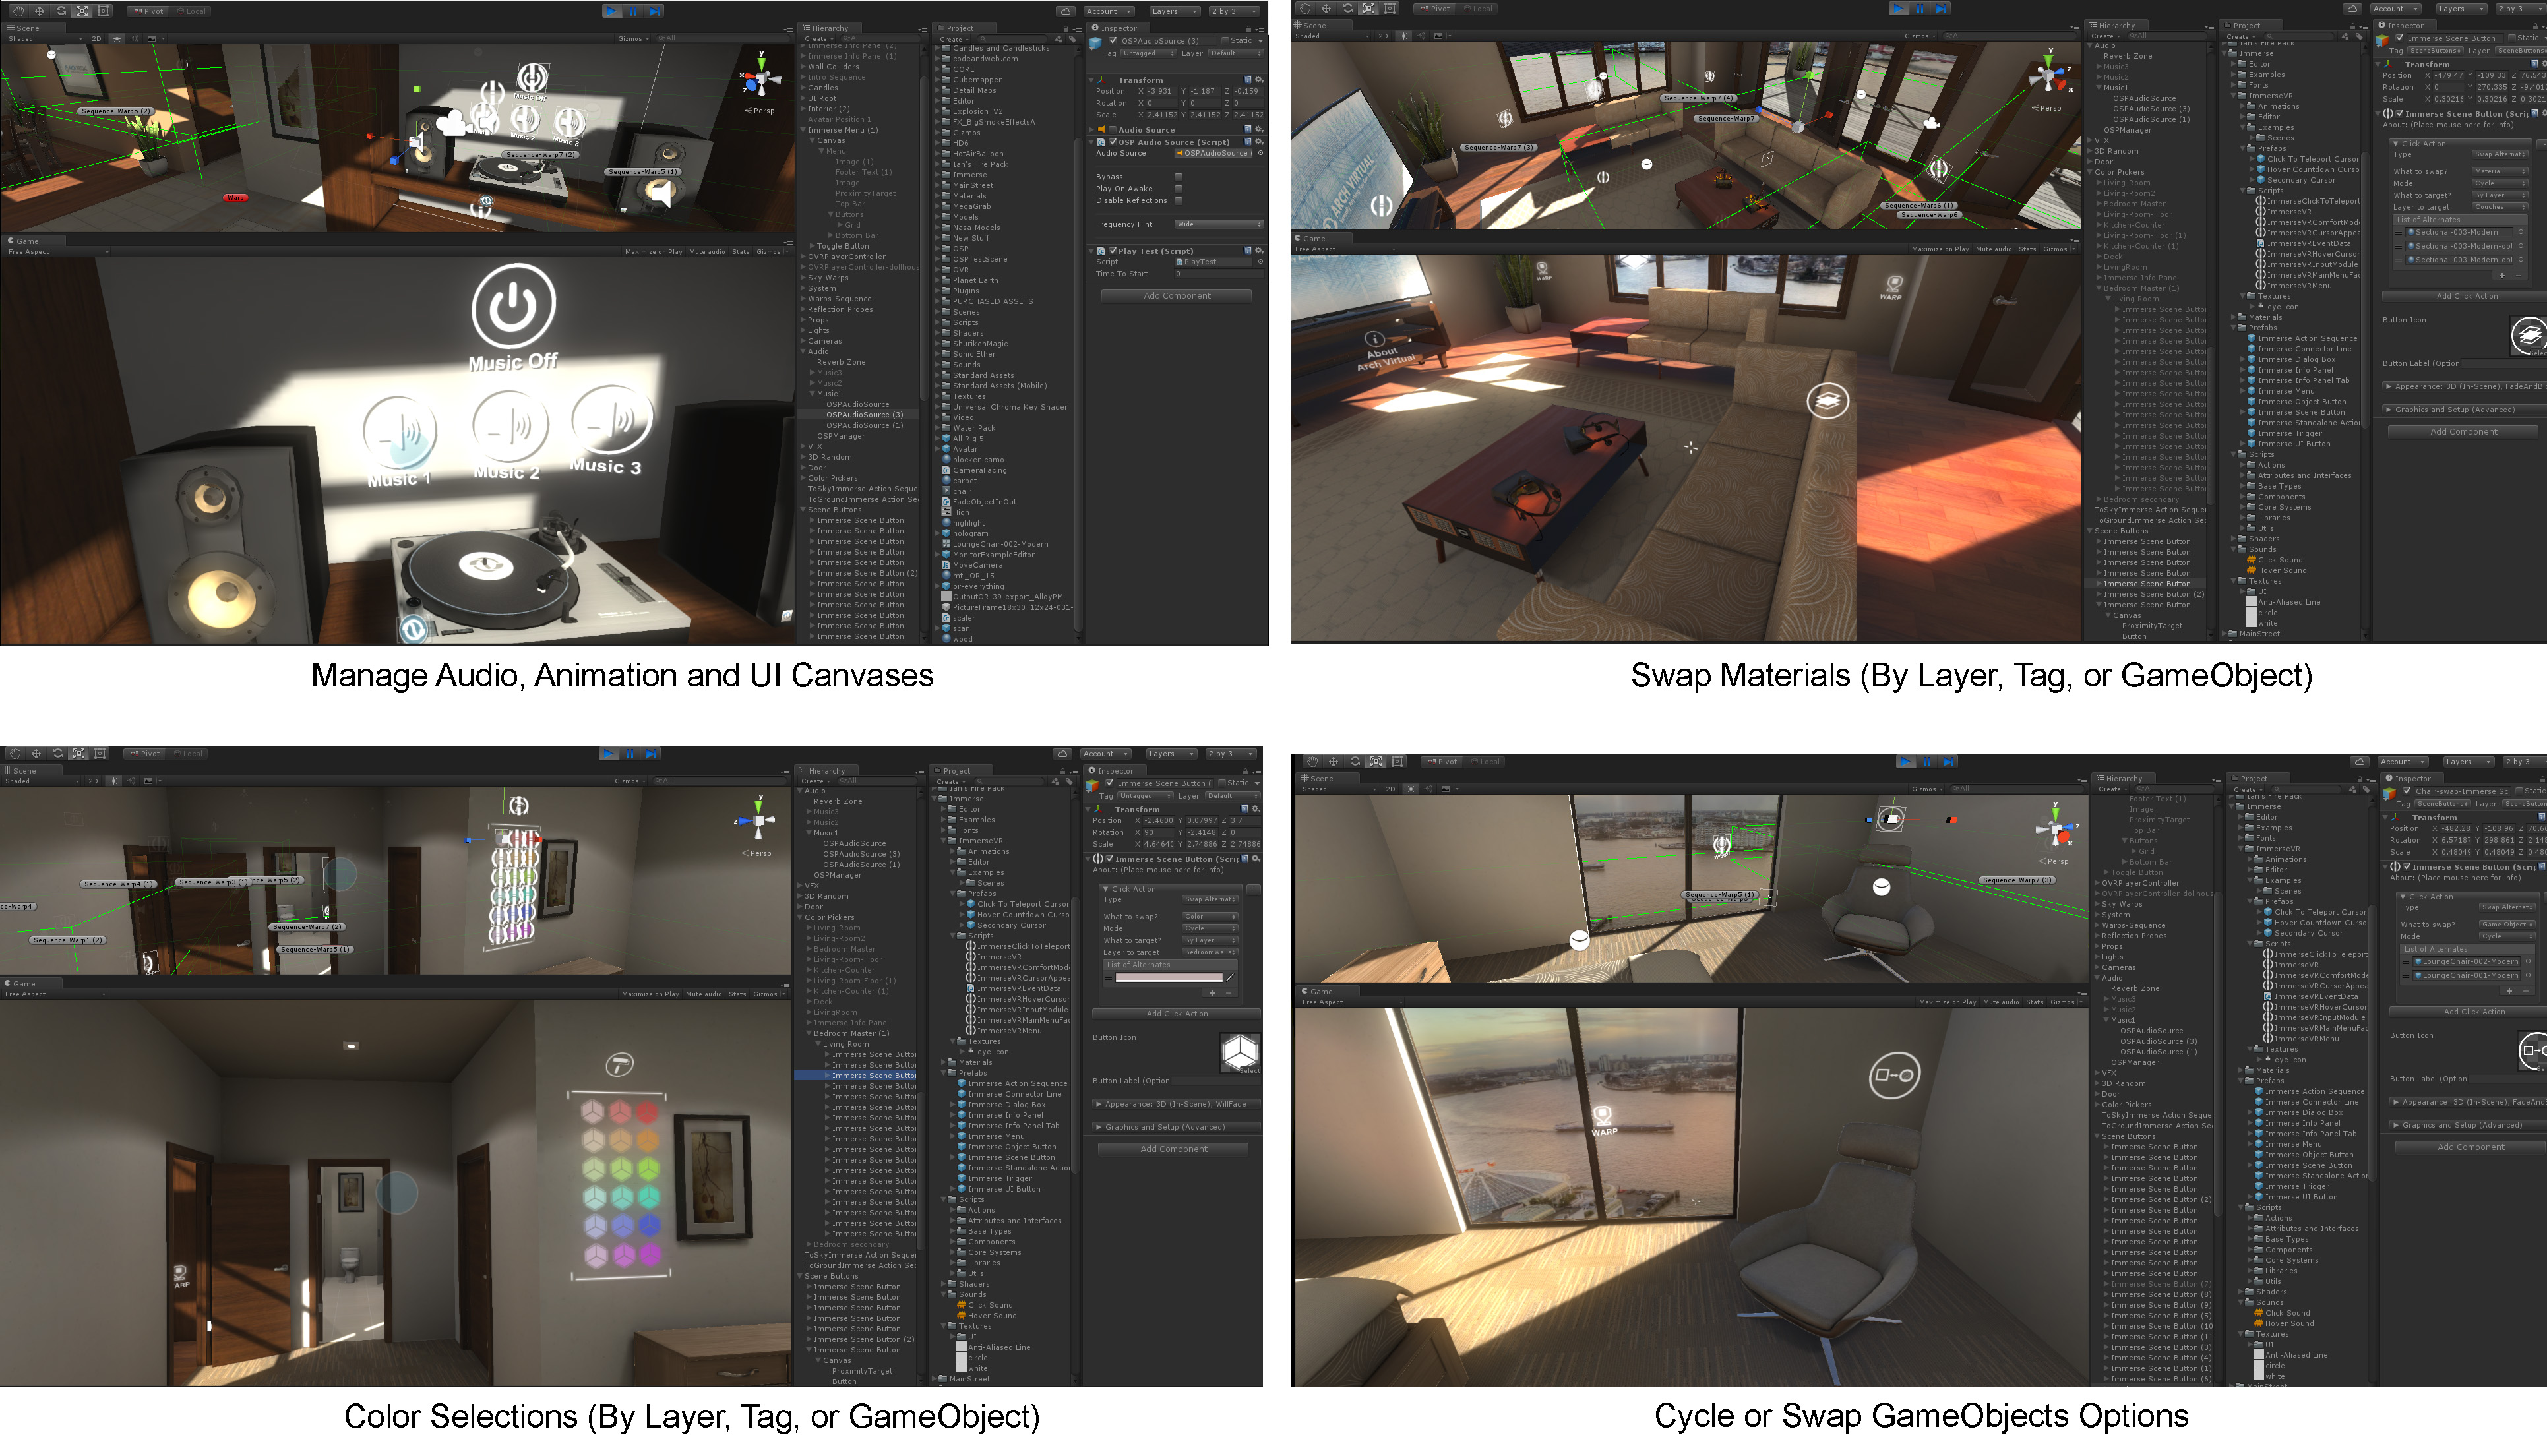 Immerse Framework: Building Blocks for Interactive VR